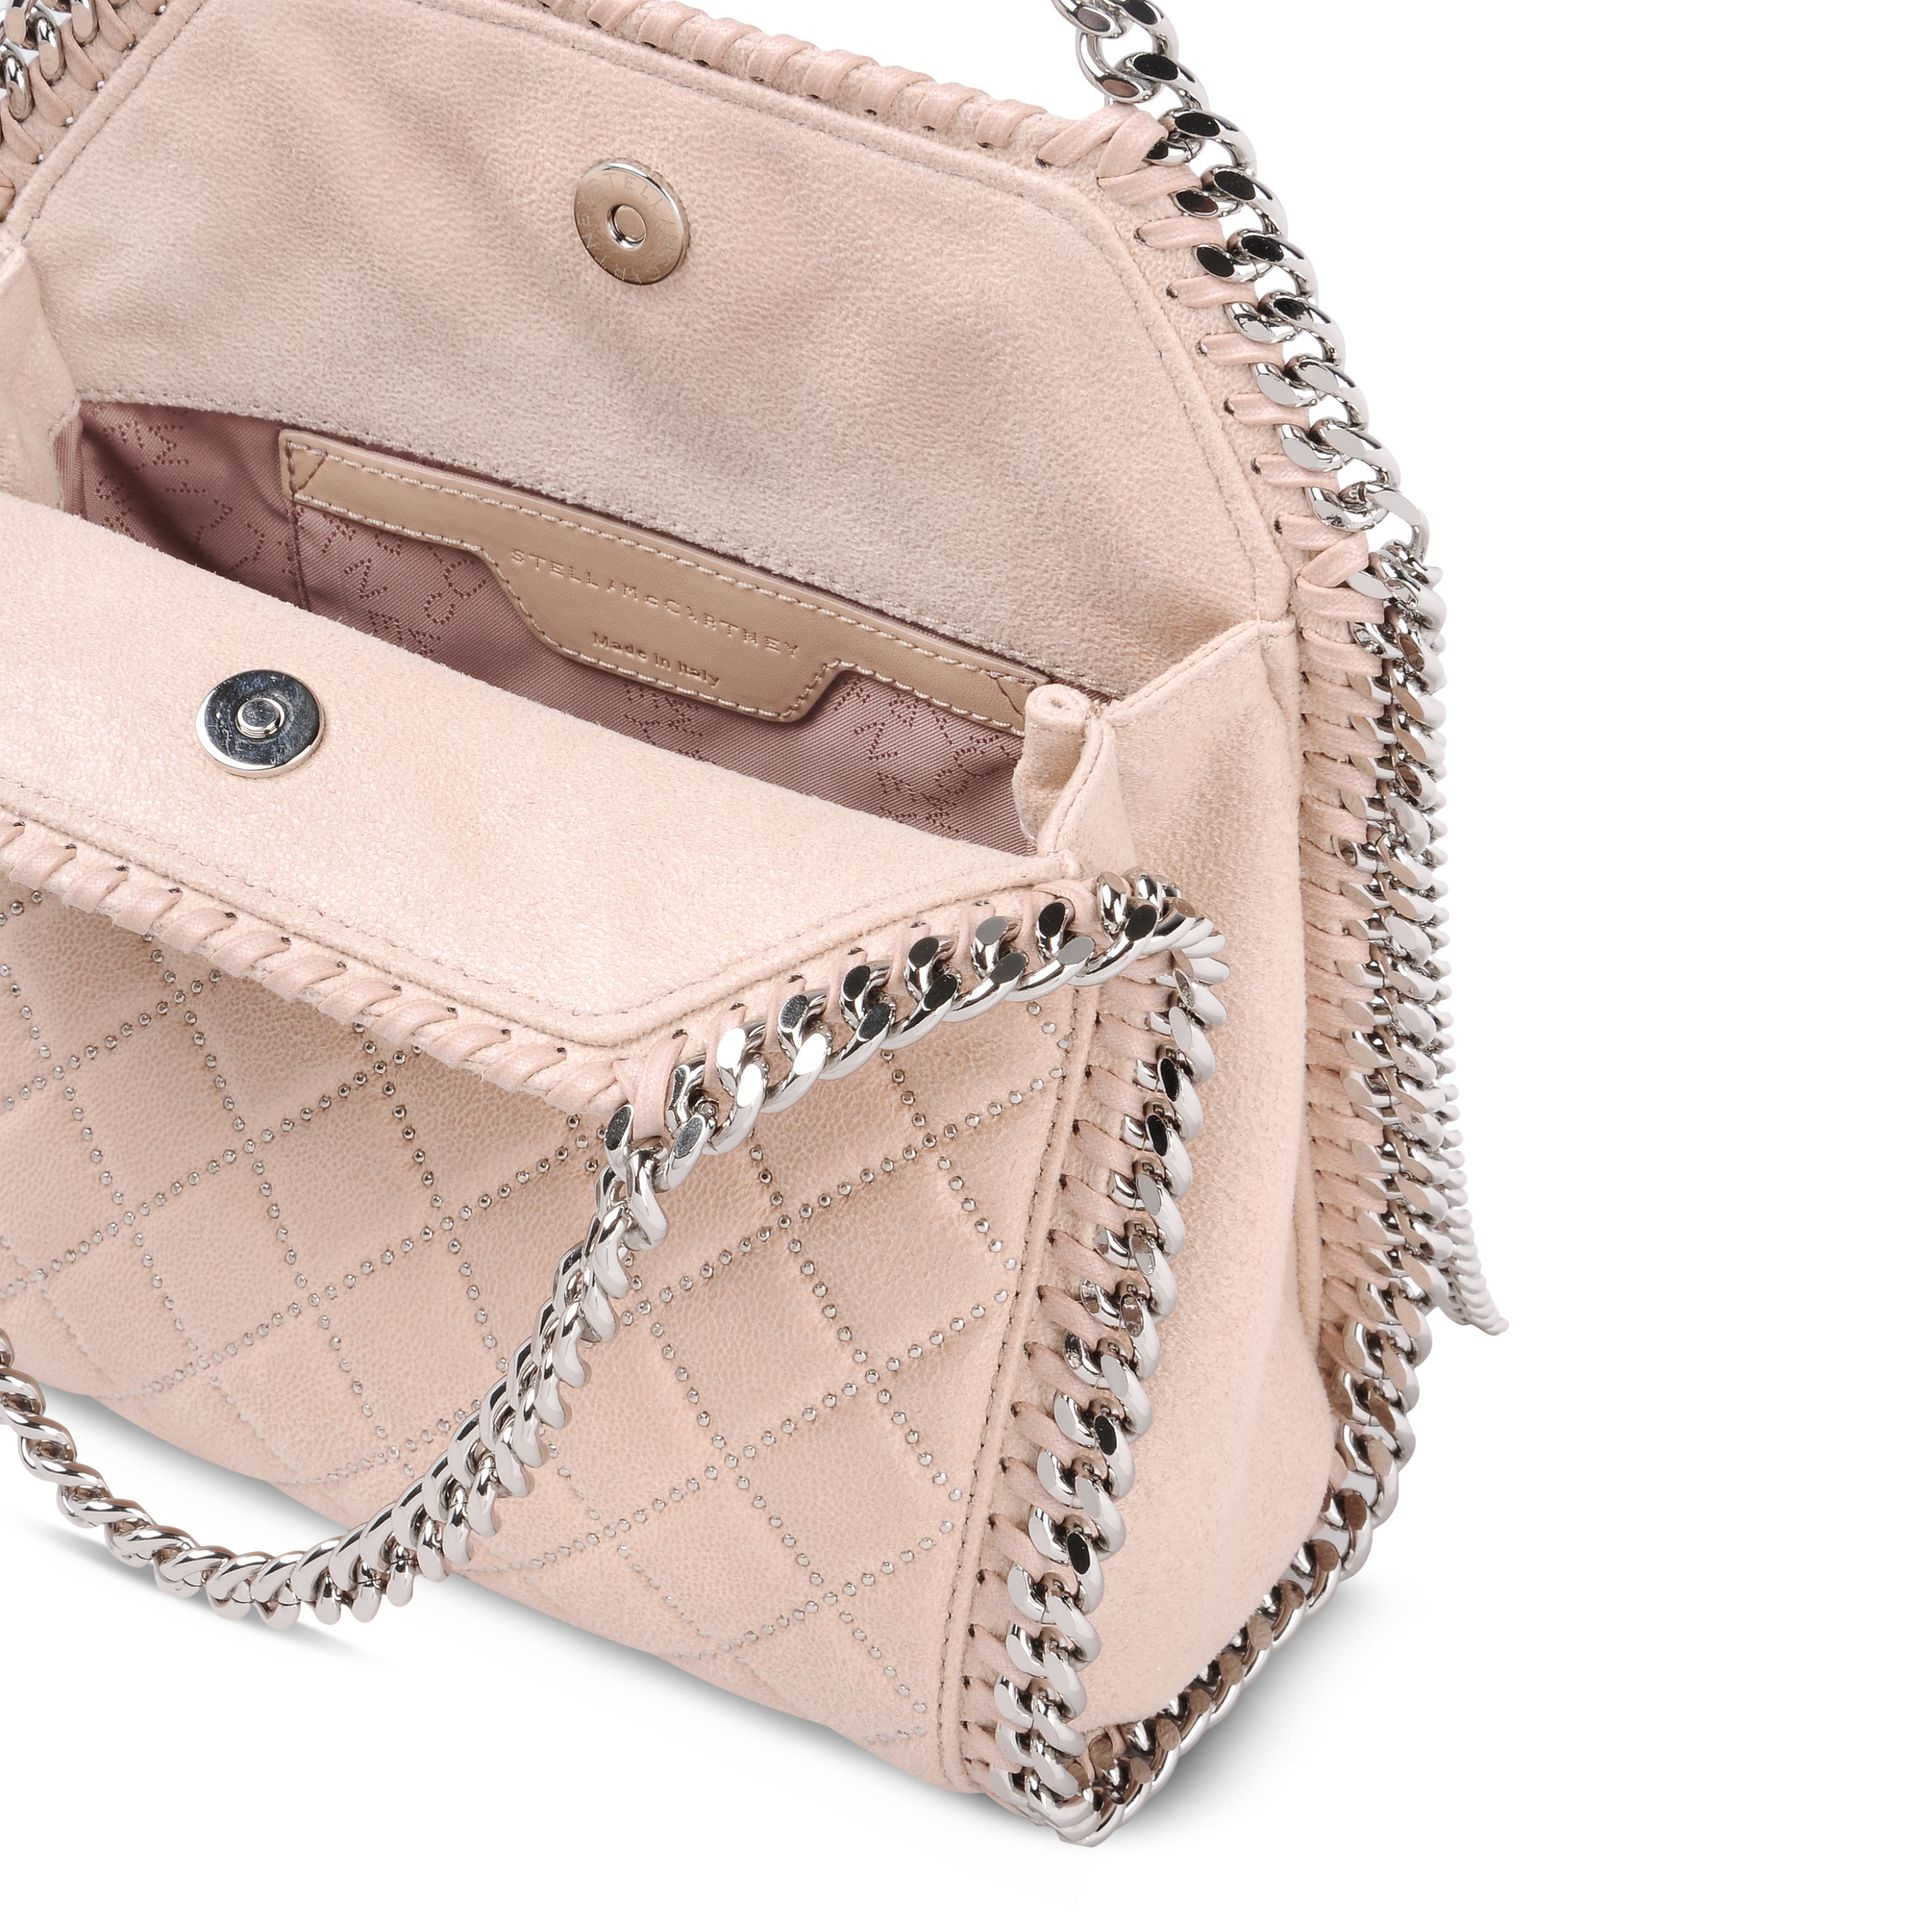 5303ea58c8e Lyst - Stella mccartney Falabella Studded Quilted Shaggy Deer Mini Tote in  Natural